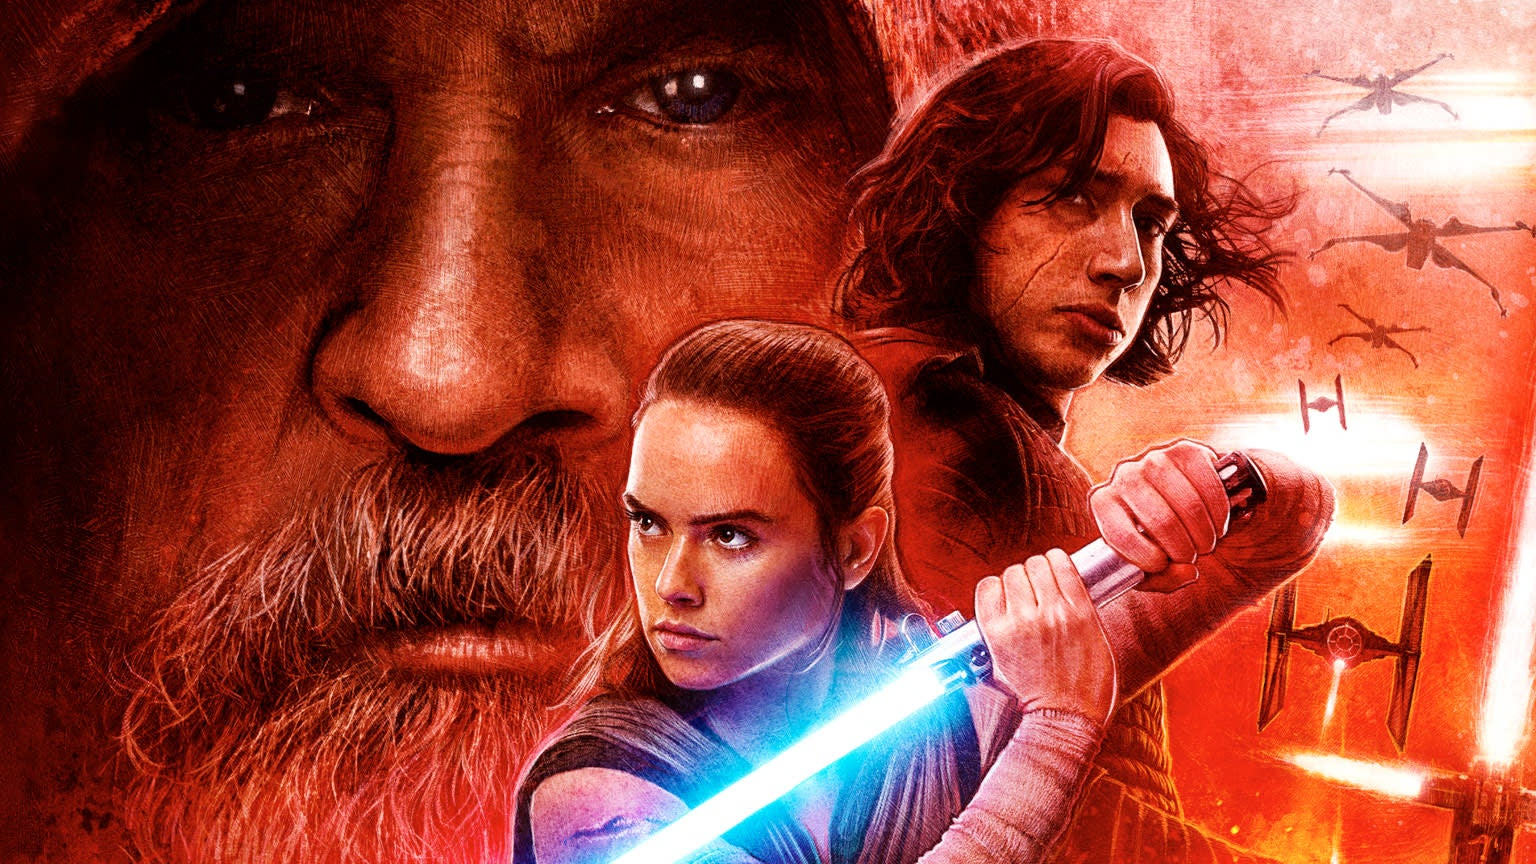 How The Last Jedi Became the Sexiest Star Wars Movie Yet